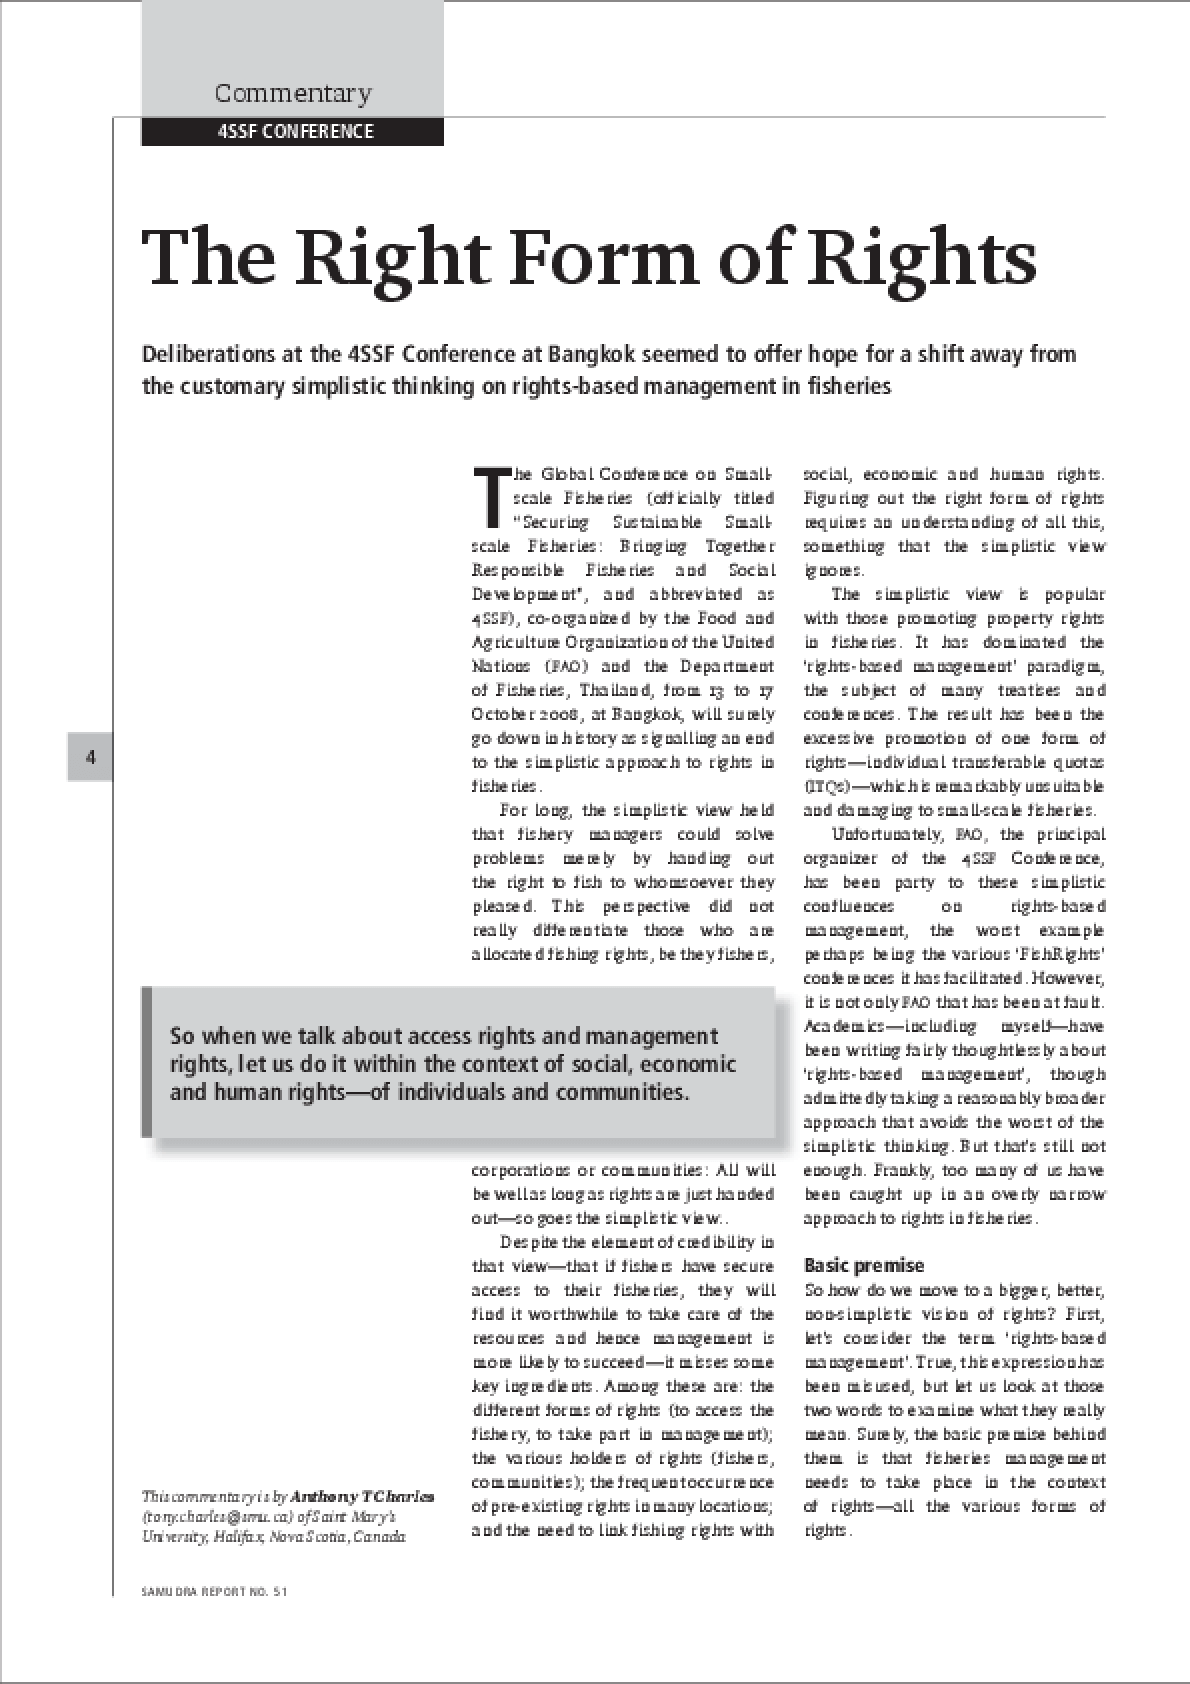 The Right Form of Rights: Commentary, 4SSF Conference - IssueLab